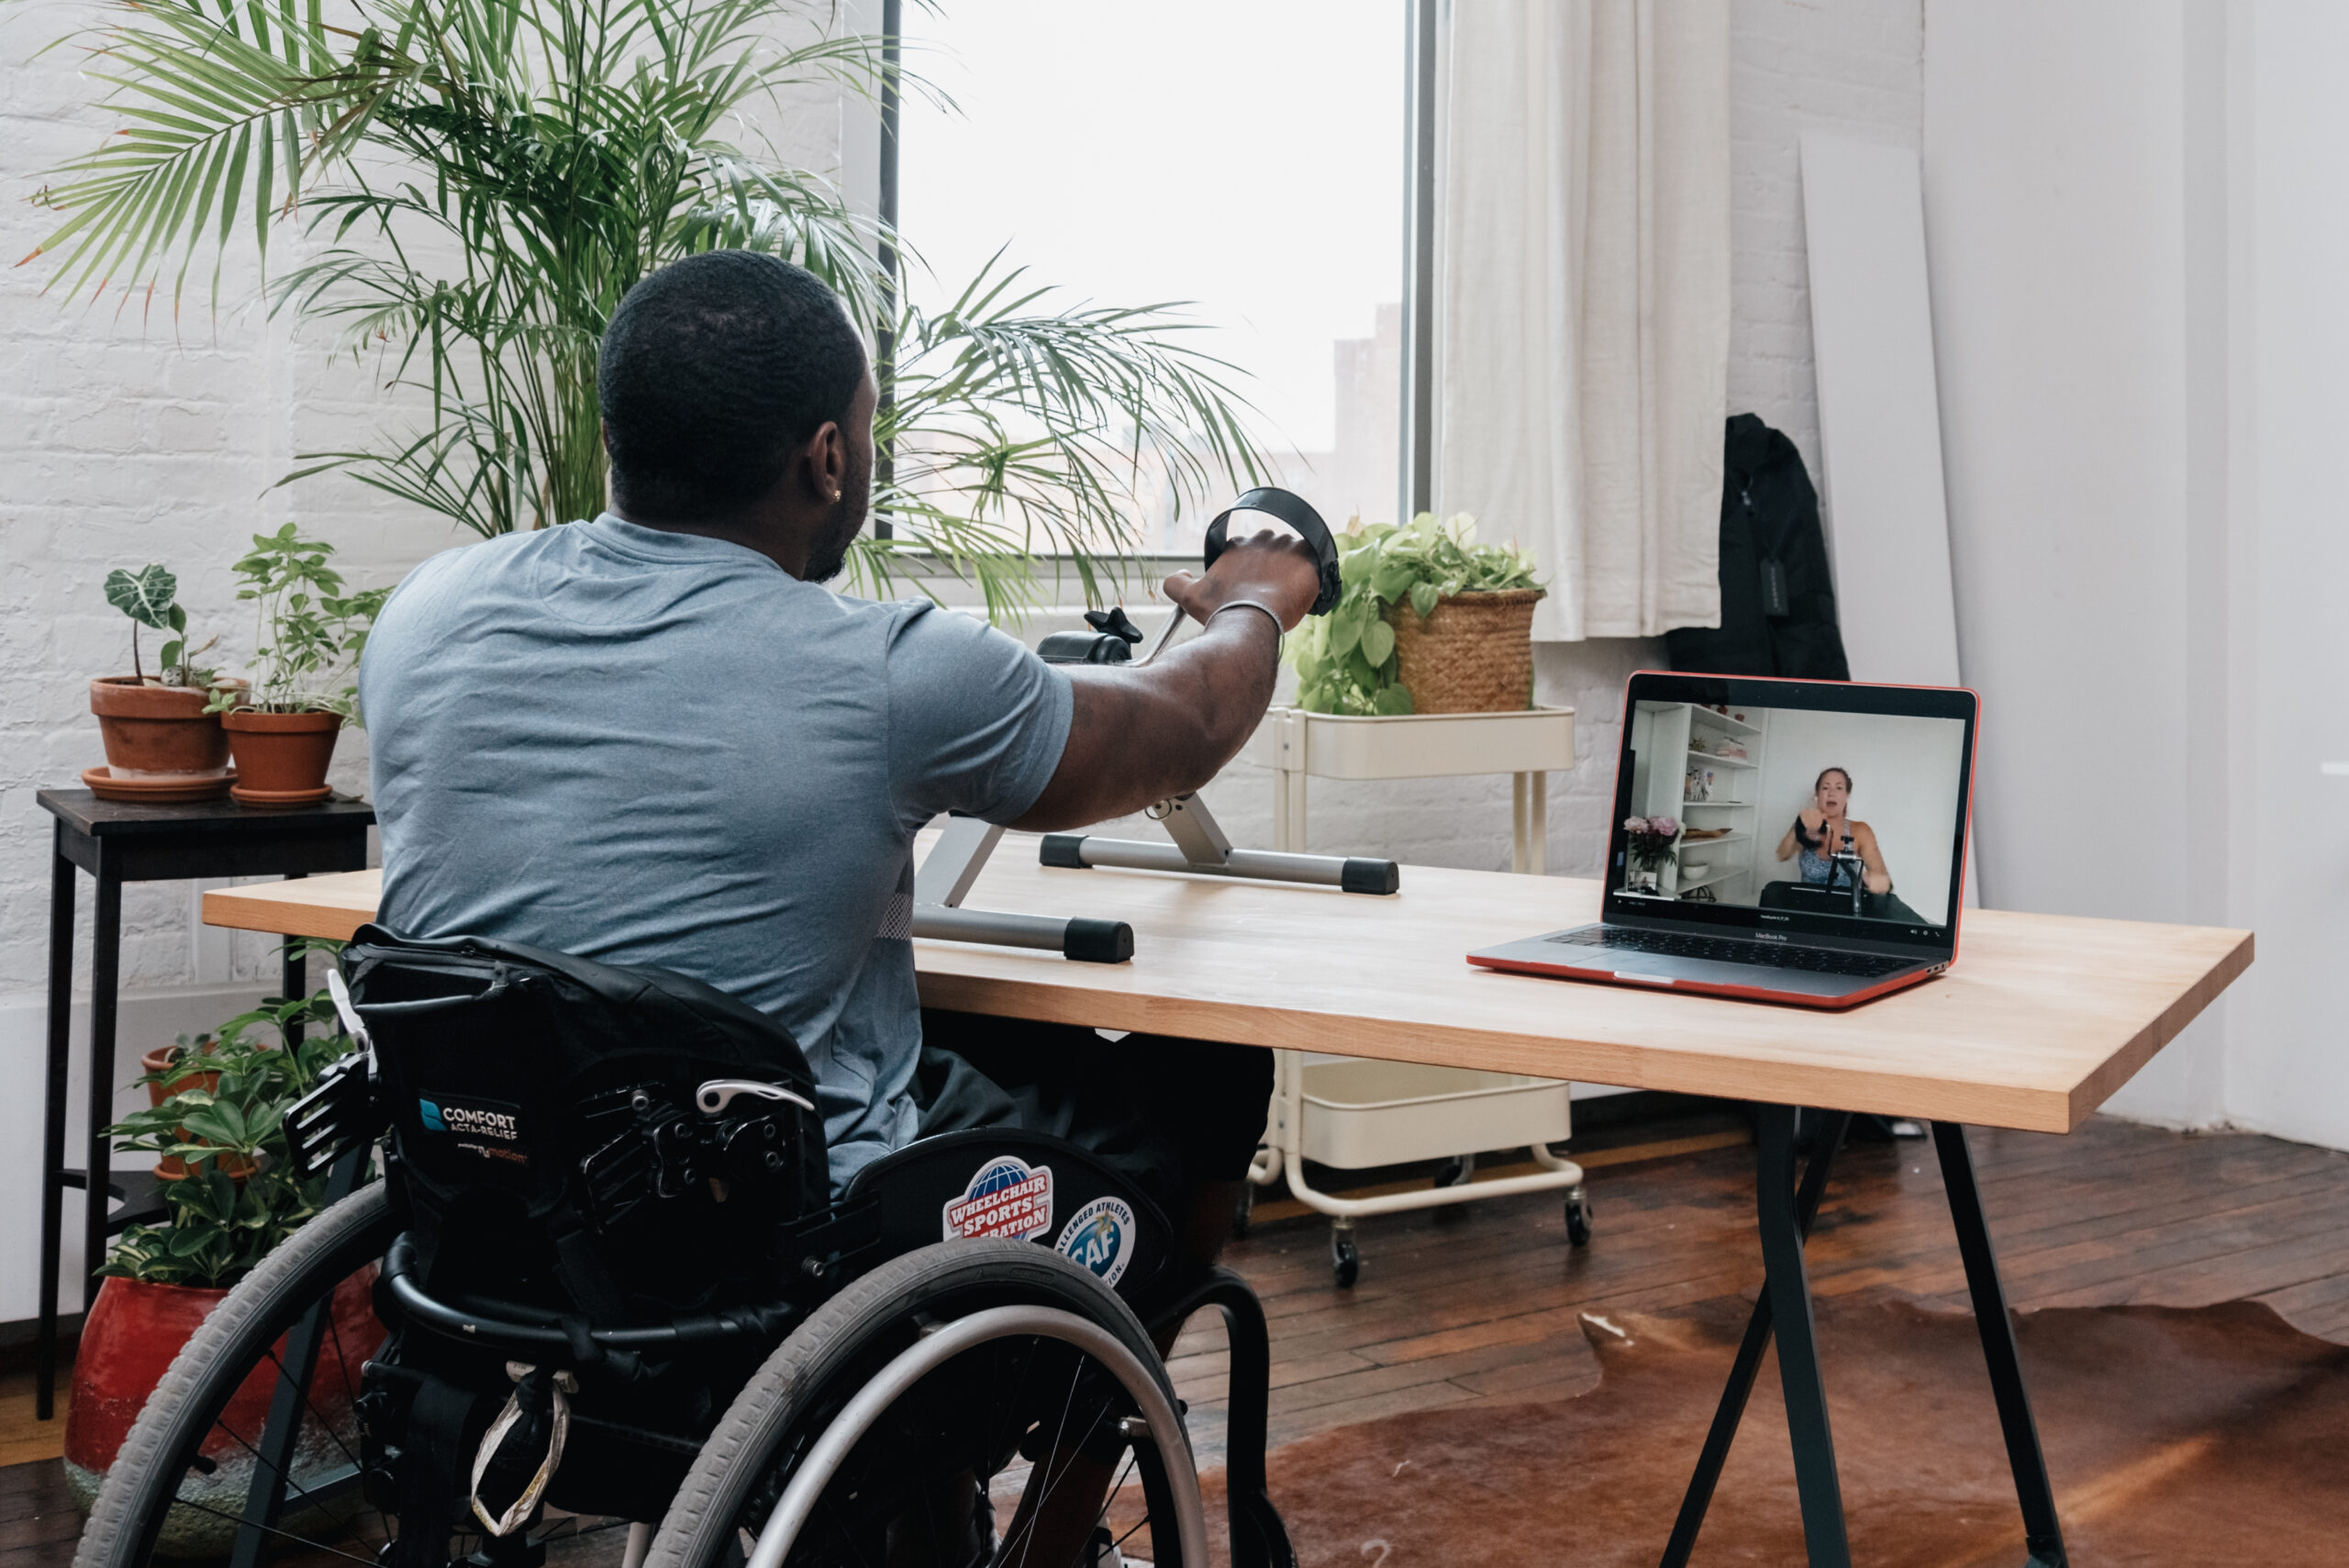 A man in a wheelchair using a handcycle exercising to a Kakana crosscycle class on his computer.